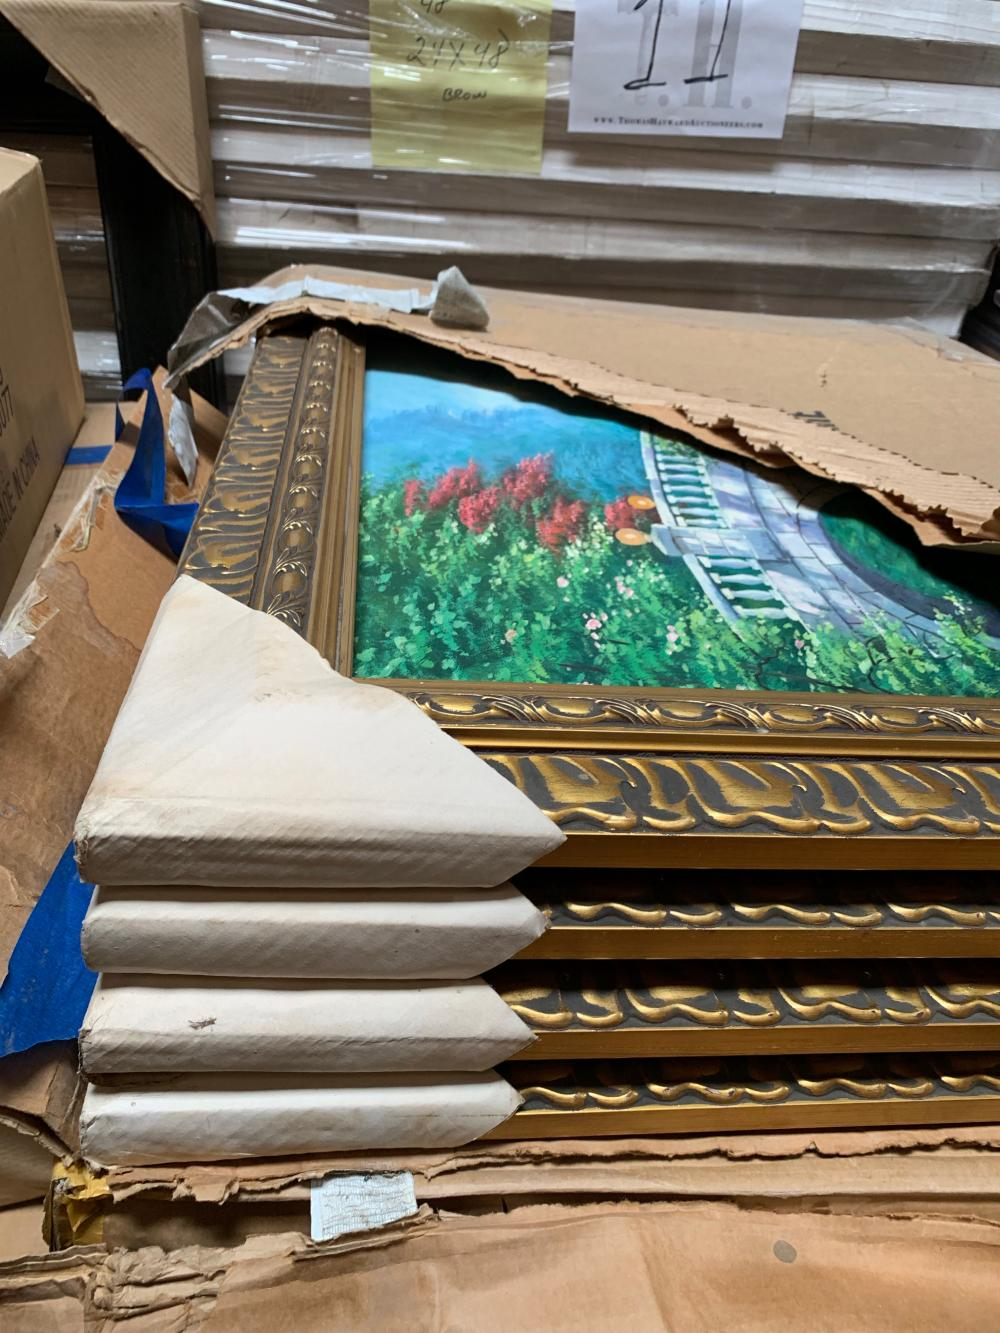 Pallet of Lights, Prints and Picture Frames